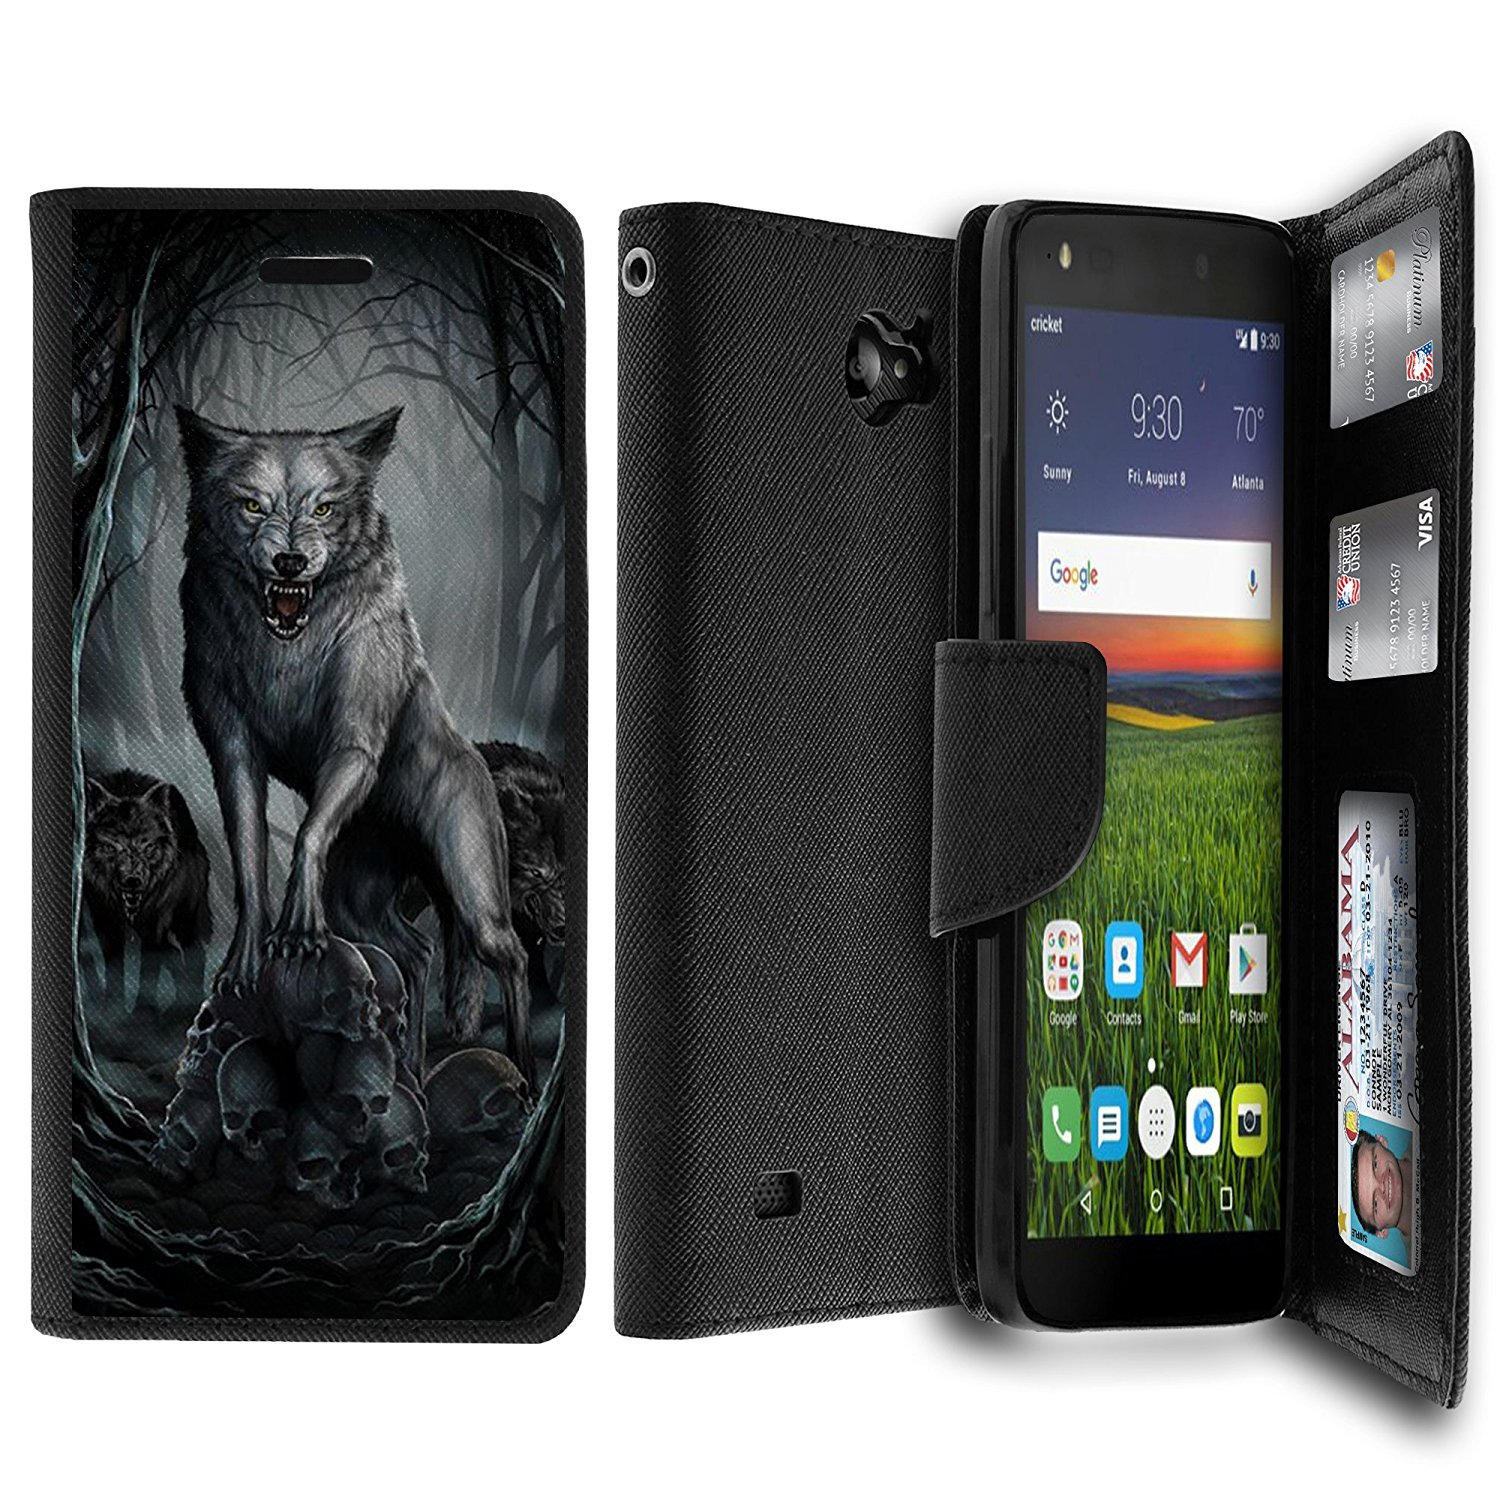 Untouchble Case for ZTE Majesty Pro Case, Majesty Pro Wallet Case[MAX WALLET] Dual Purpose Wallet Case, Phone Protector and Wallet Style Design Card ID Slot Custom Print Design - Midnight Wolf